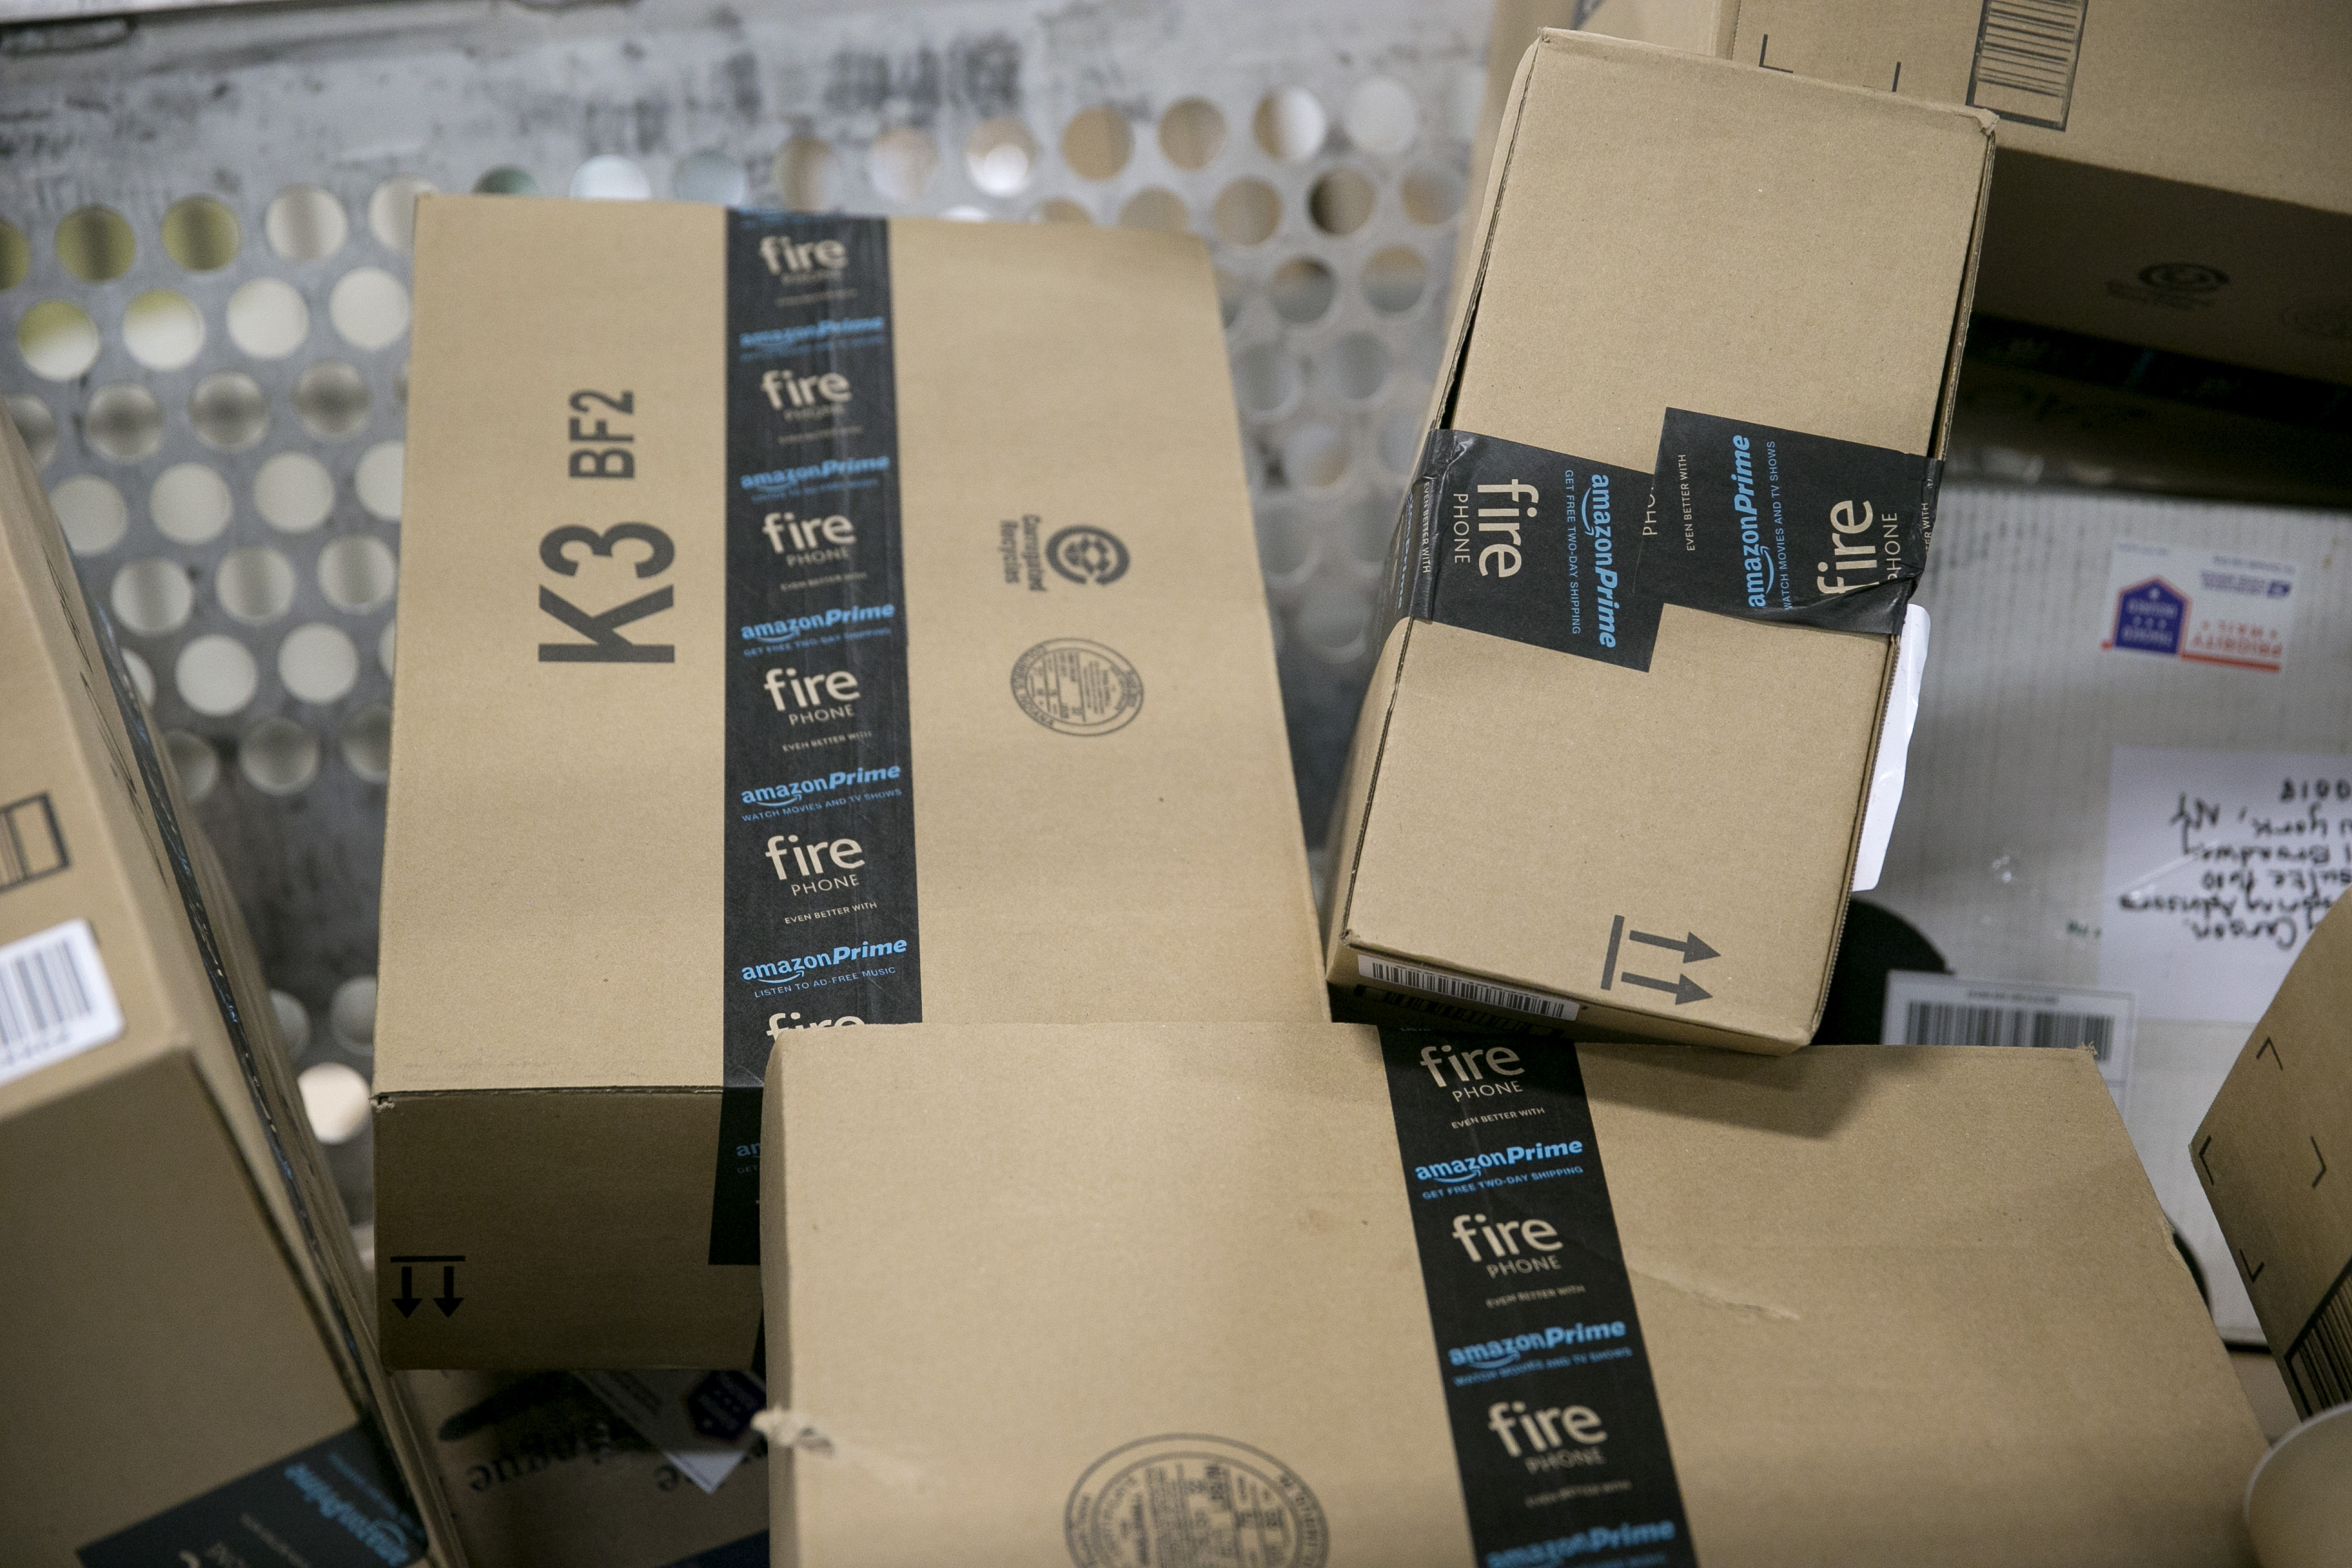 Amazon.com packages await shipment at the Indianapolis Mail Processing Annex Dec.15, 2014 in Indianapolis.